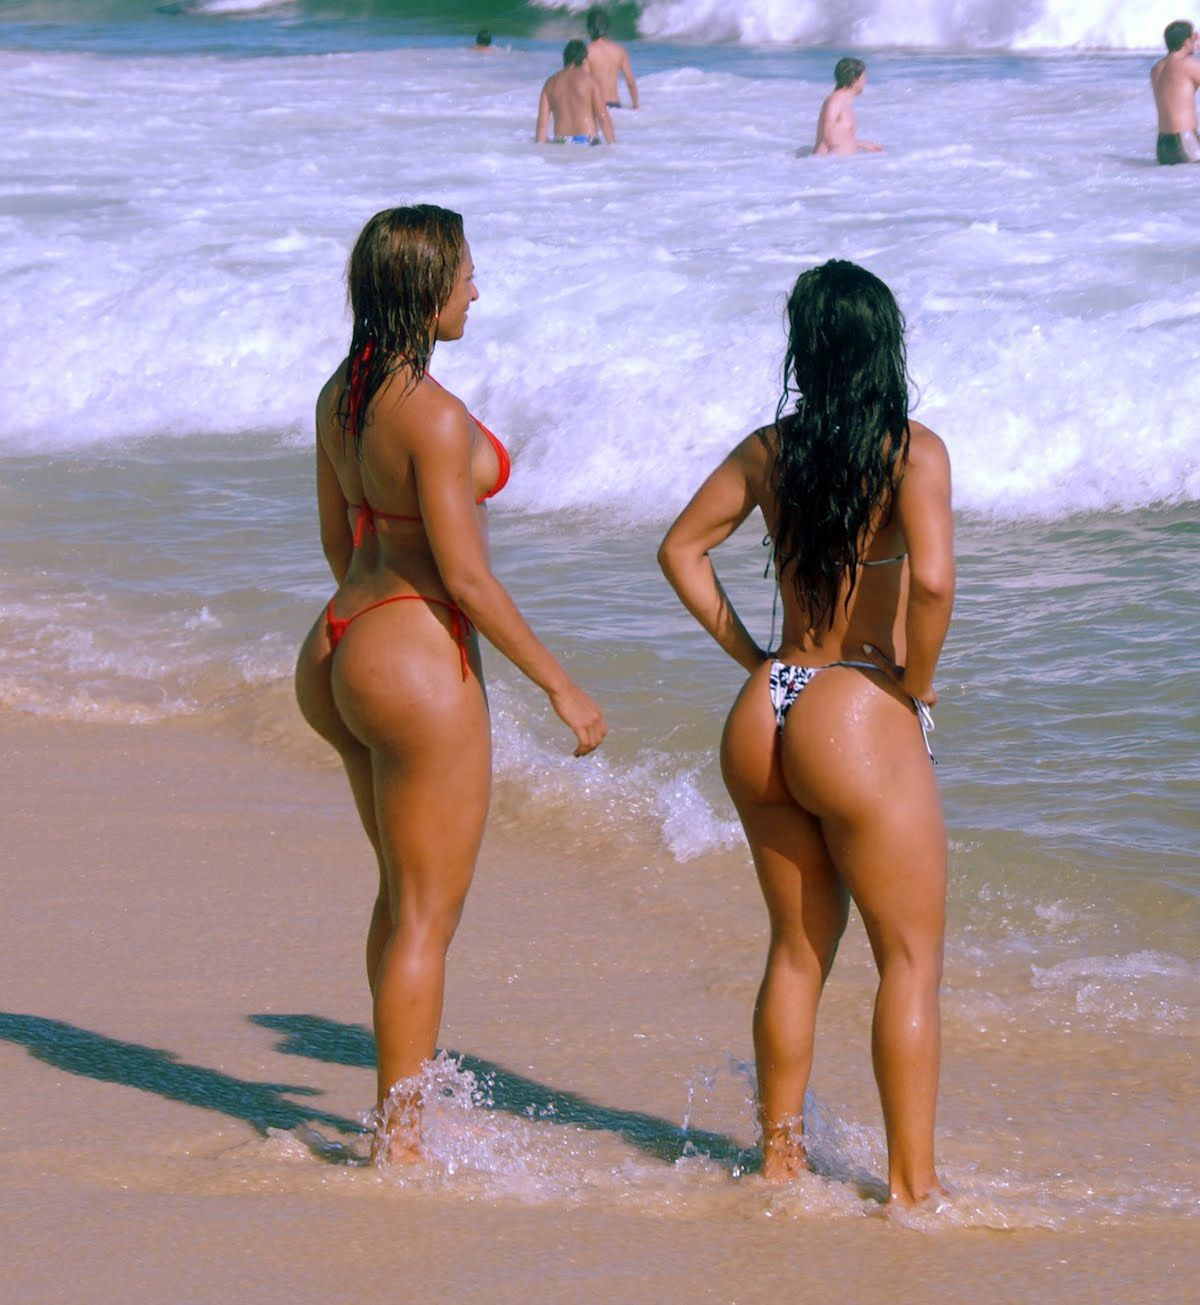 Teen beaches of brazil